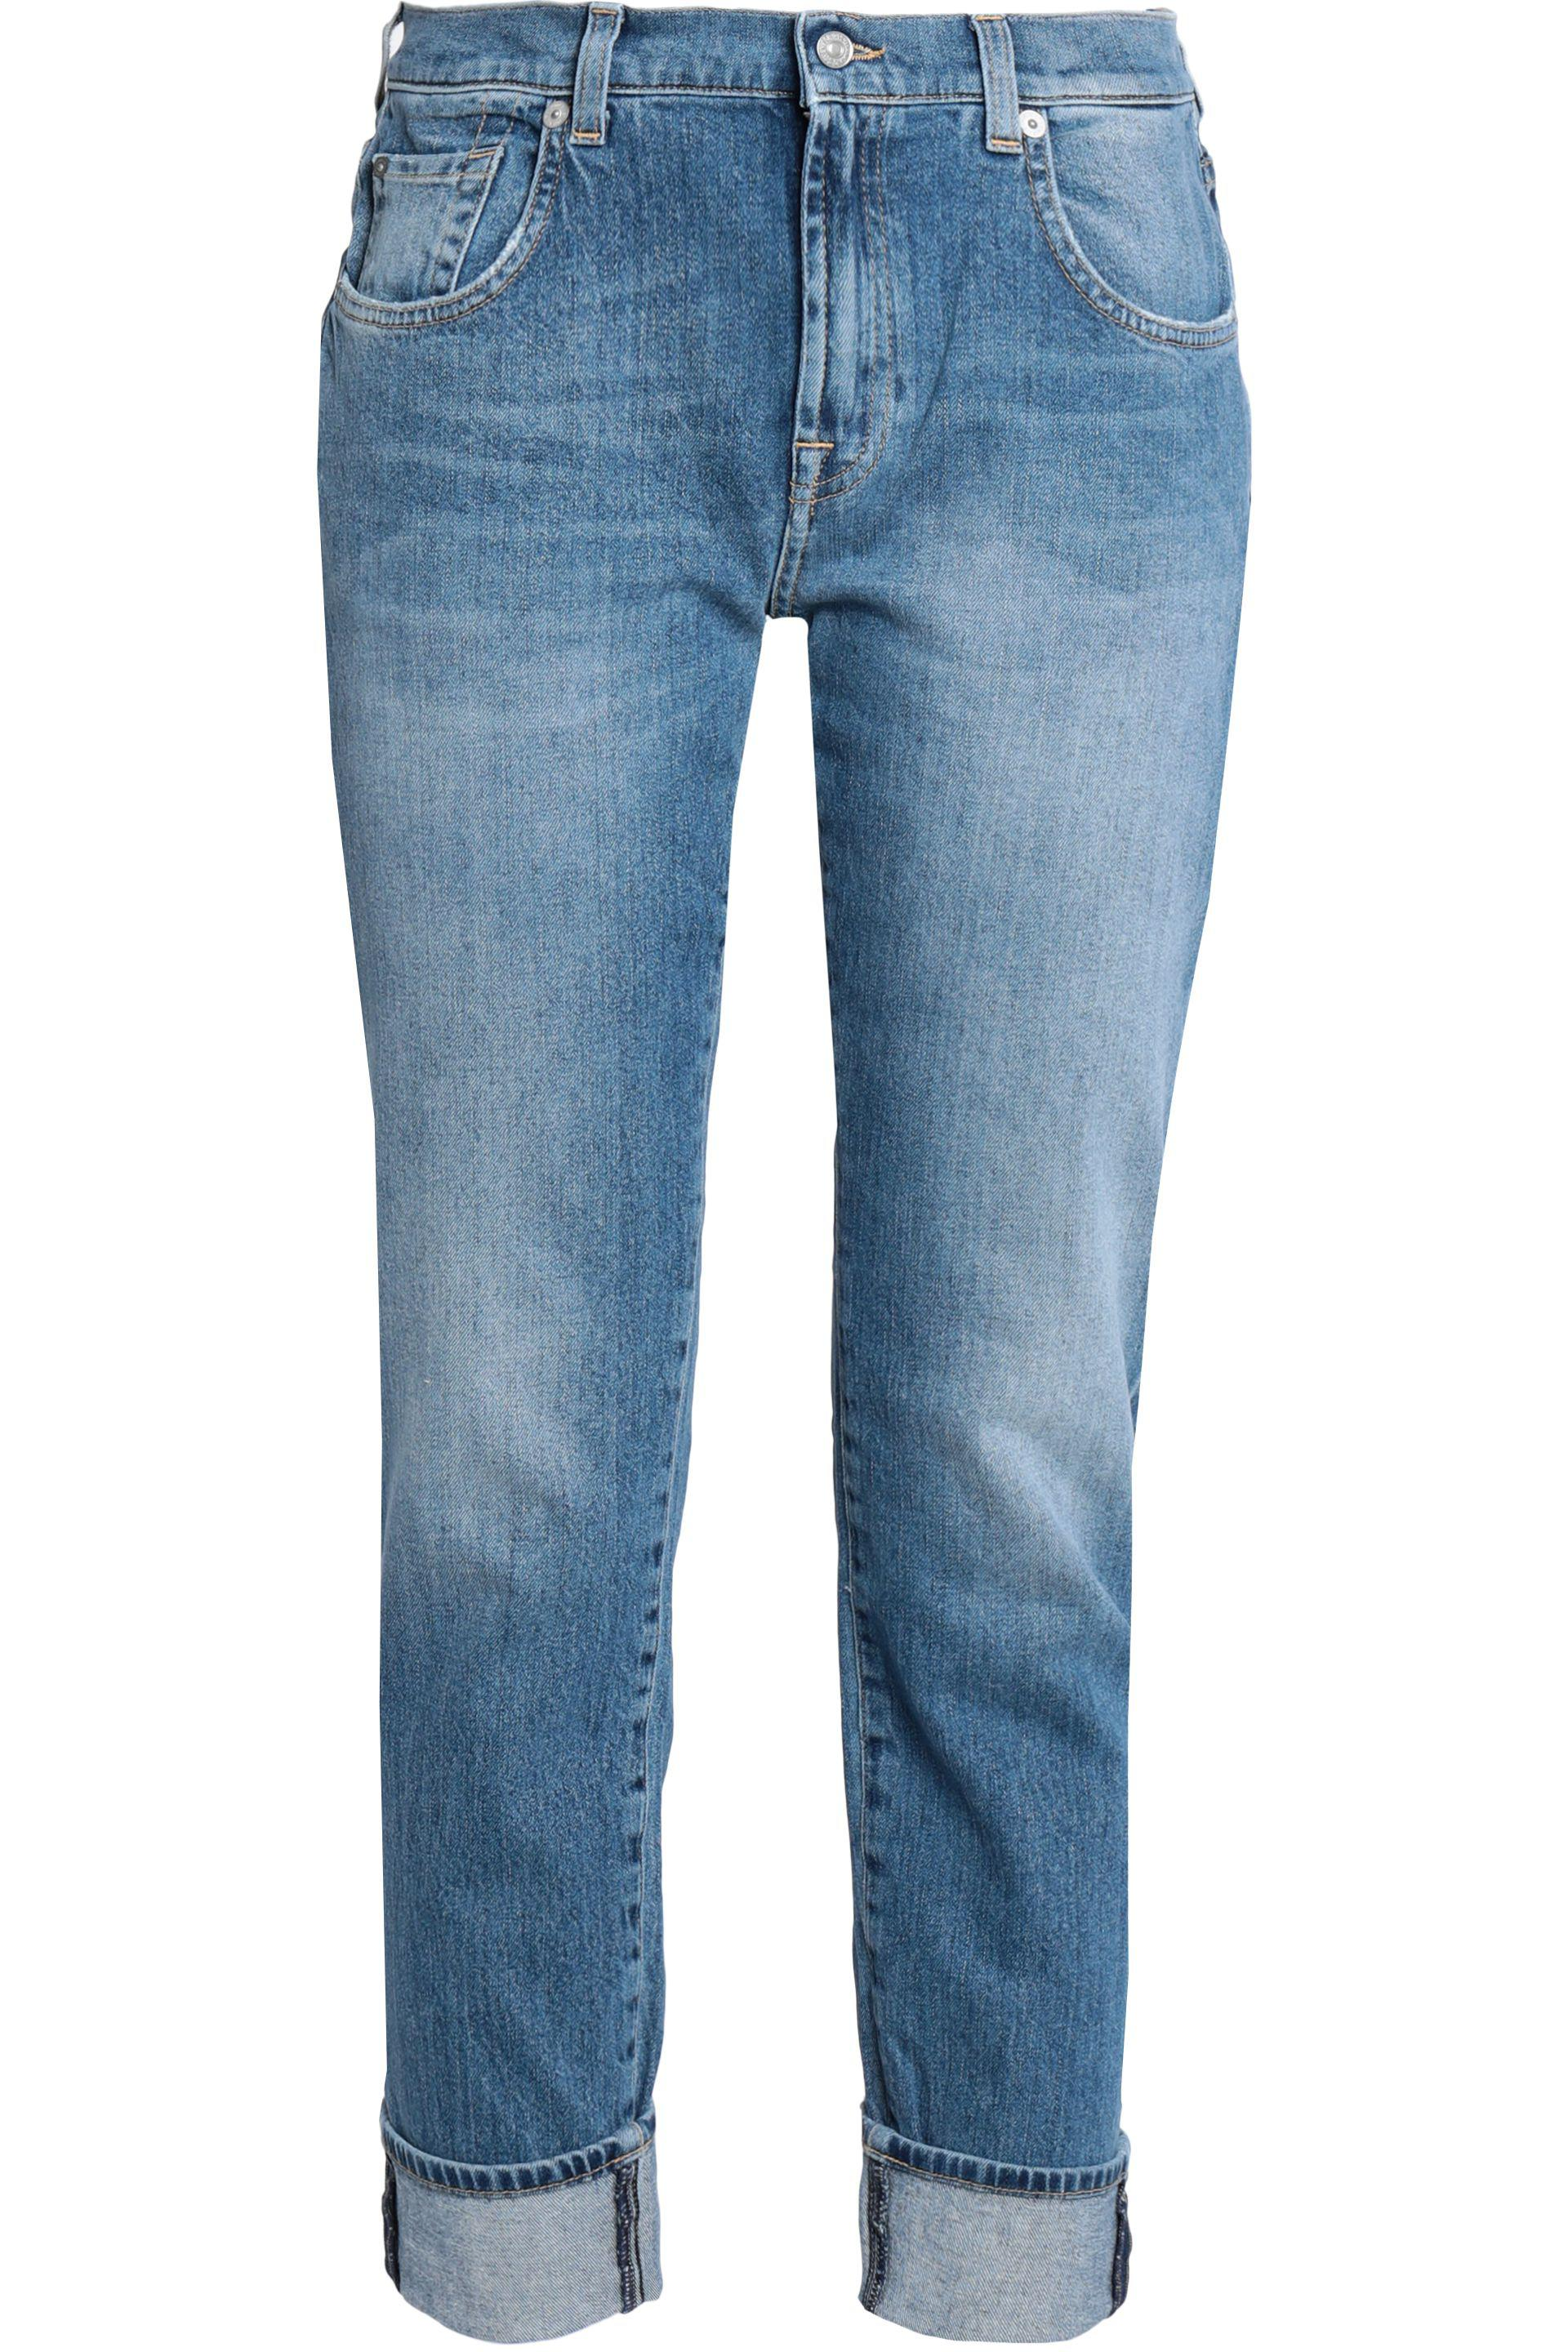 7 For All Mankind Woman Cropped Faded Mid-rise Slim-leg Jeans Mid Denim Size 29 7 For All Mankind i6uJk